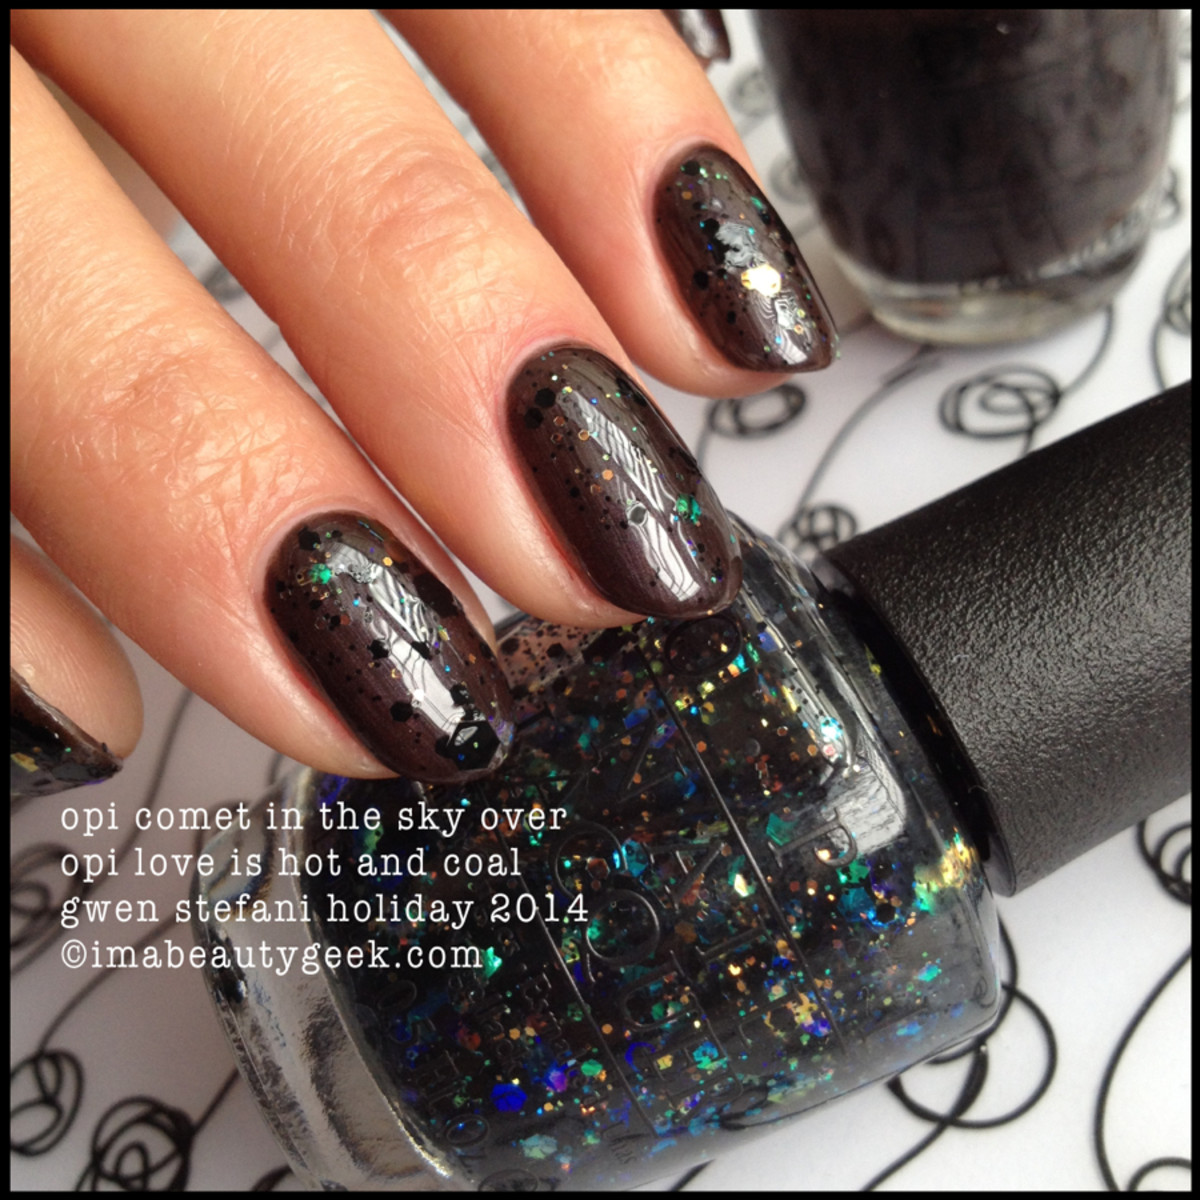 OPI Comet in the Sky over OPI Love is Hot and Coal Gwen Stefani Holiday 2014